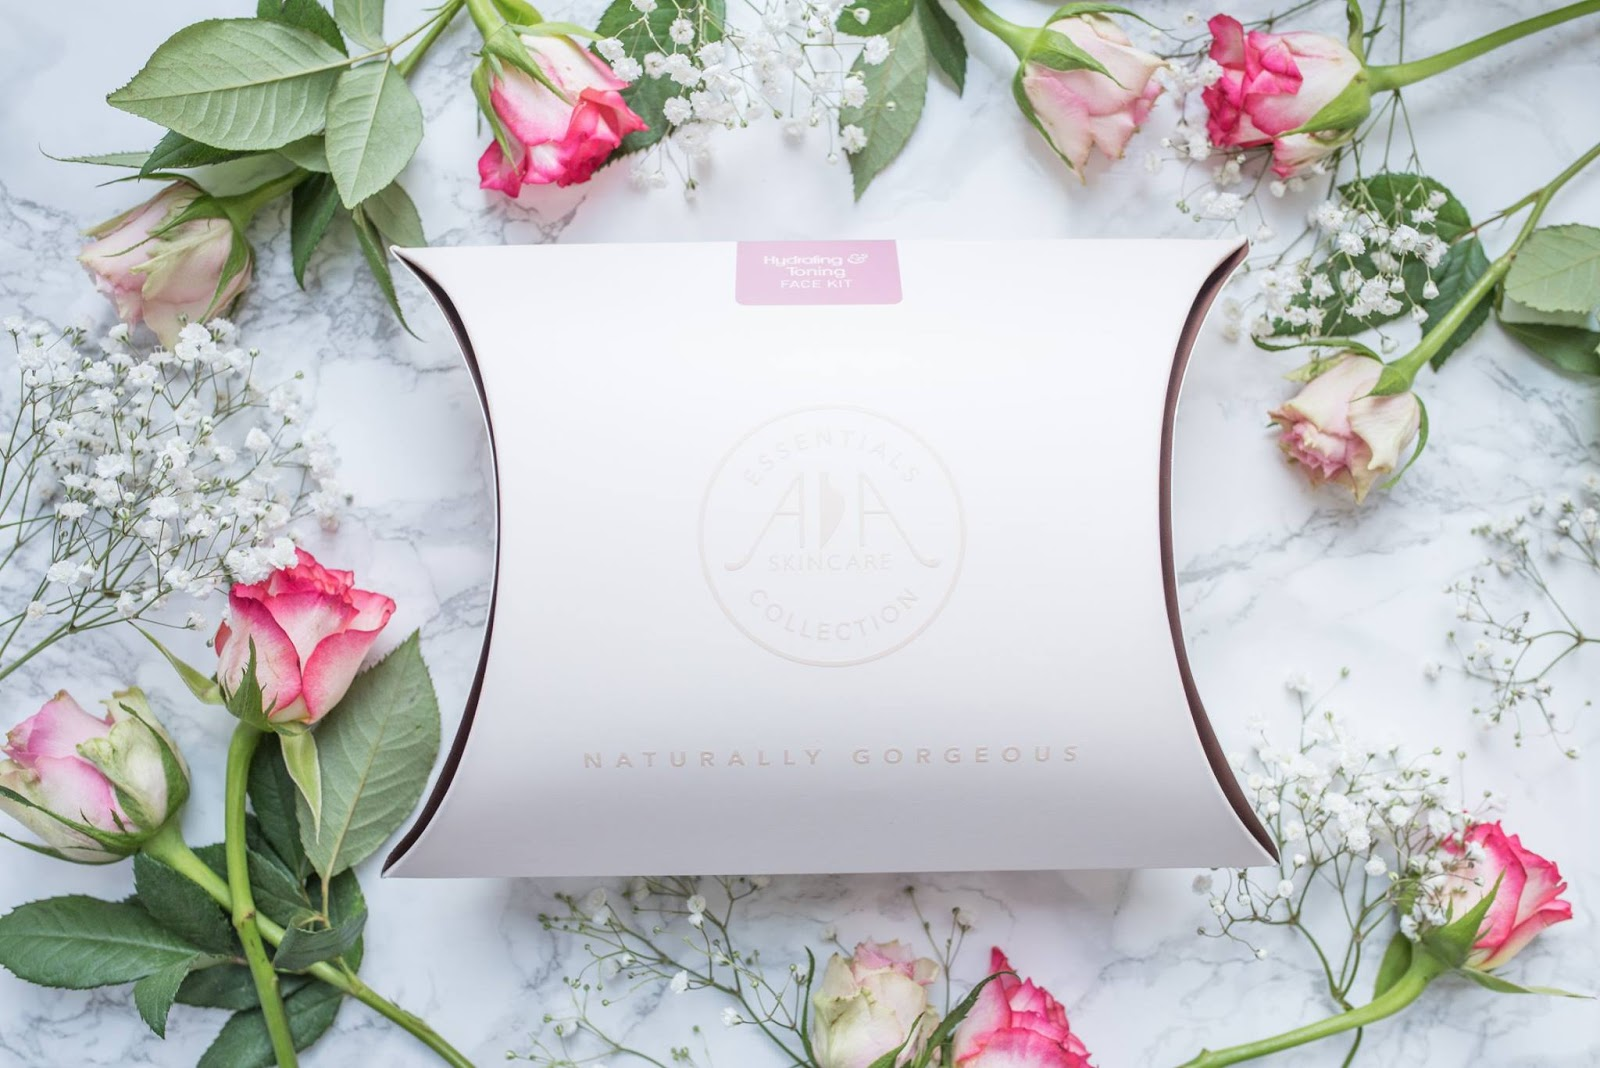 Mothers Day Idea - AA Skincare Gift Set - Frankincense ...